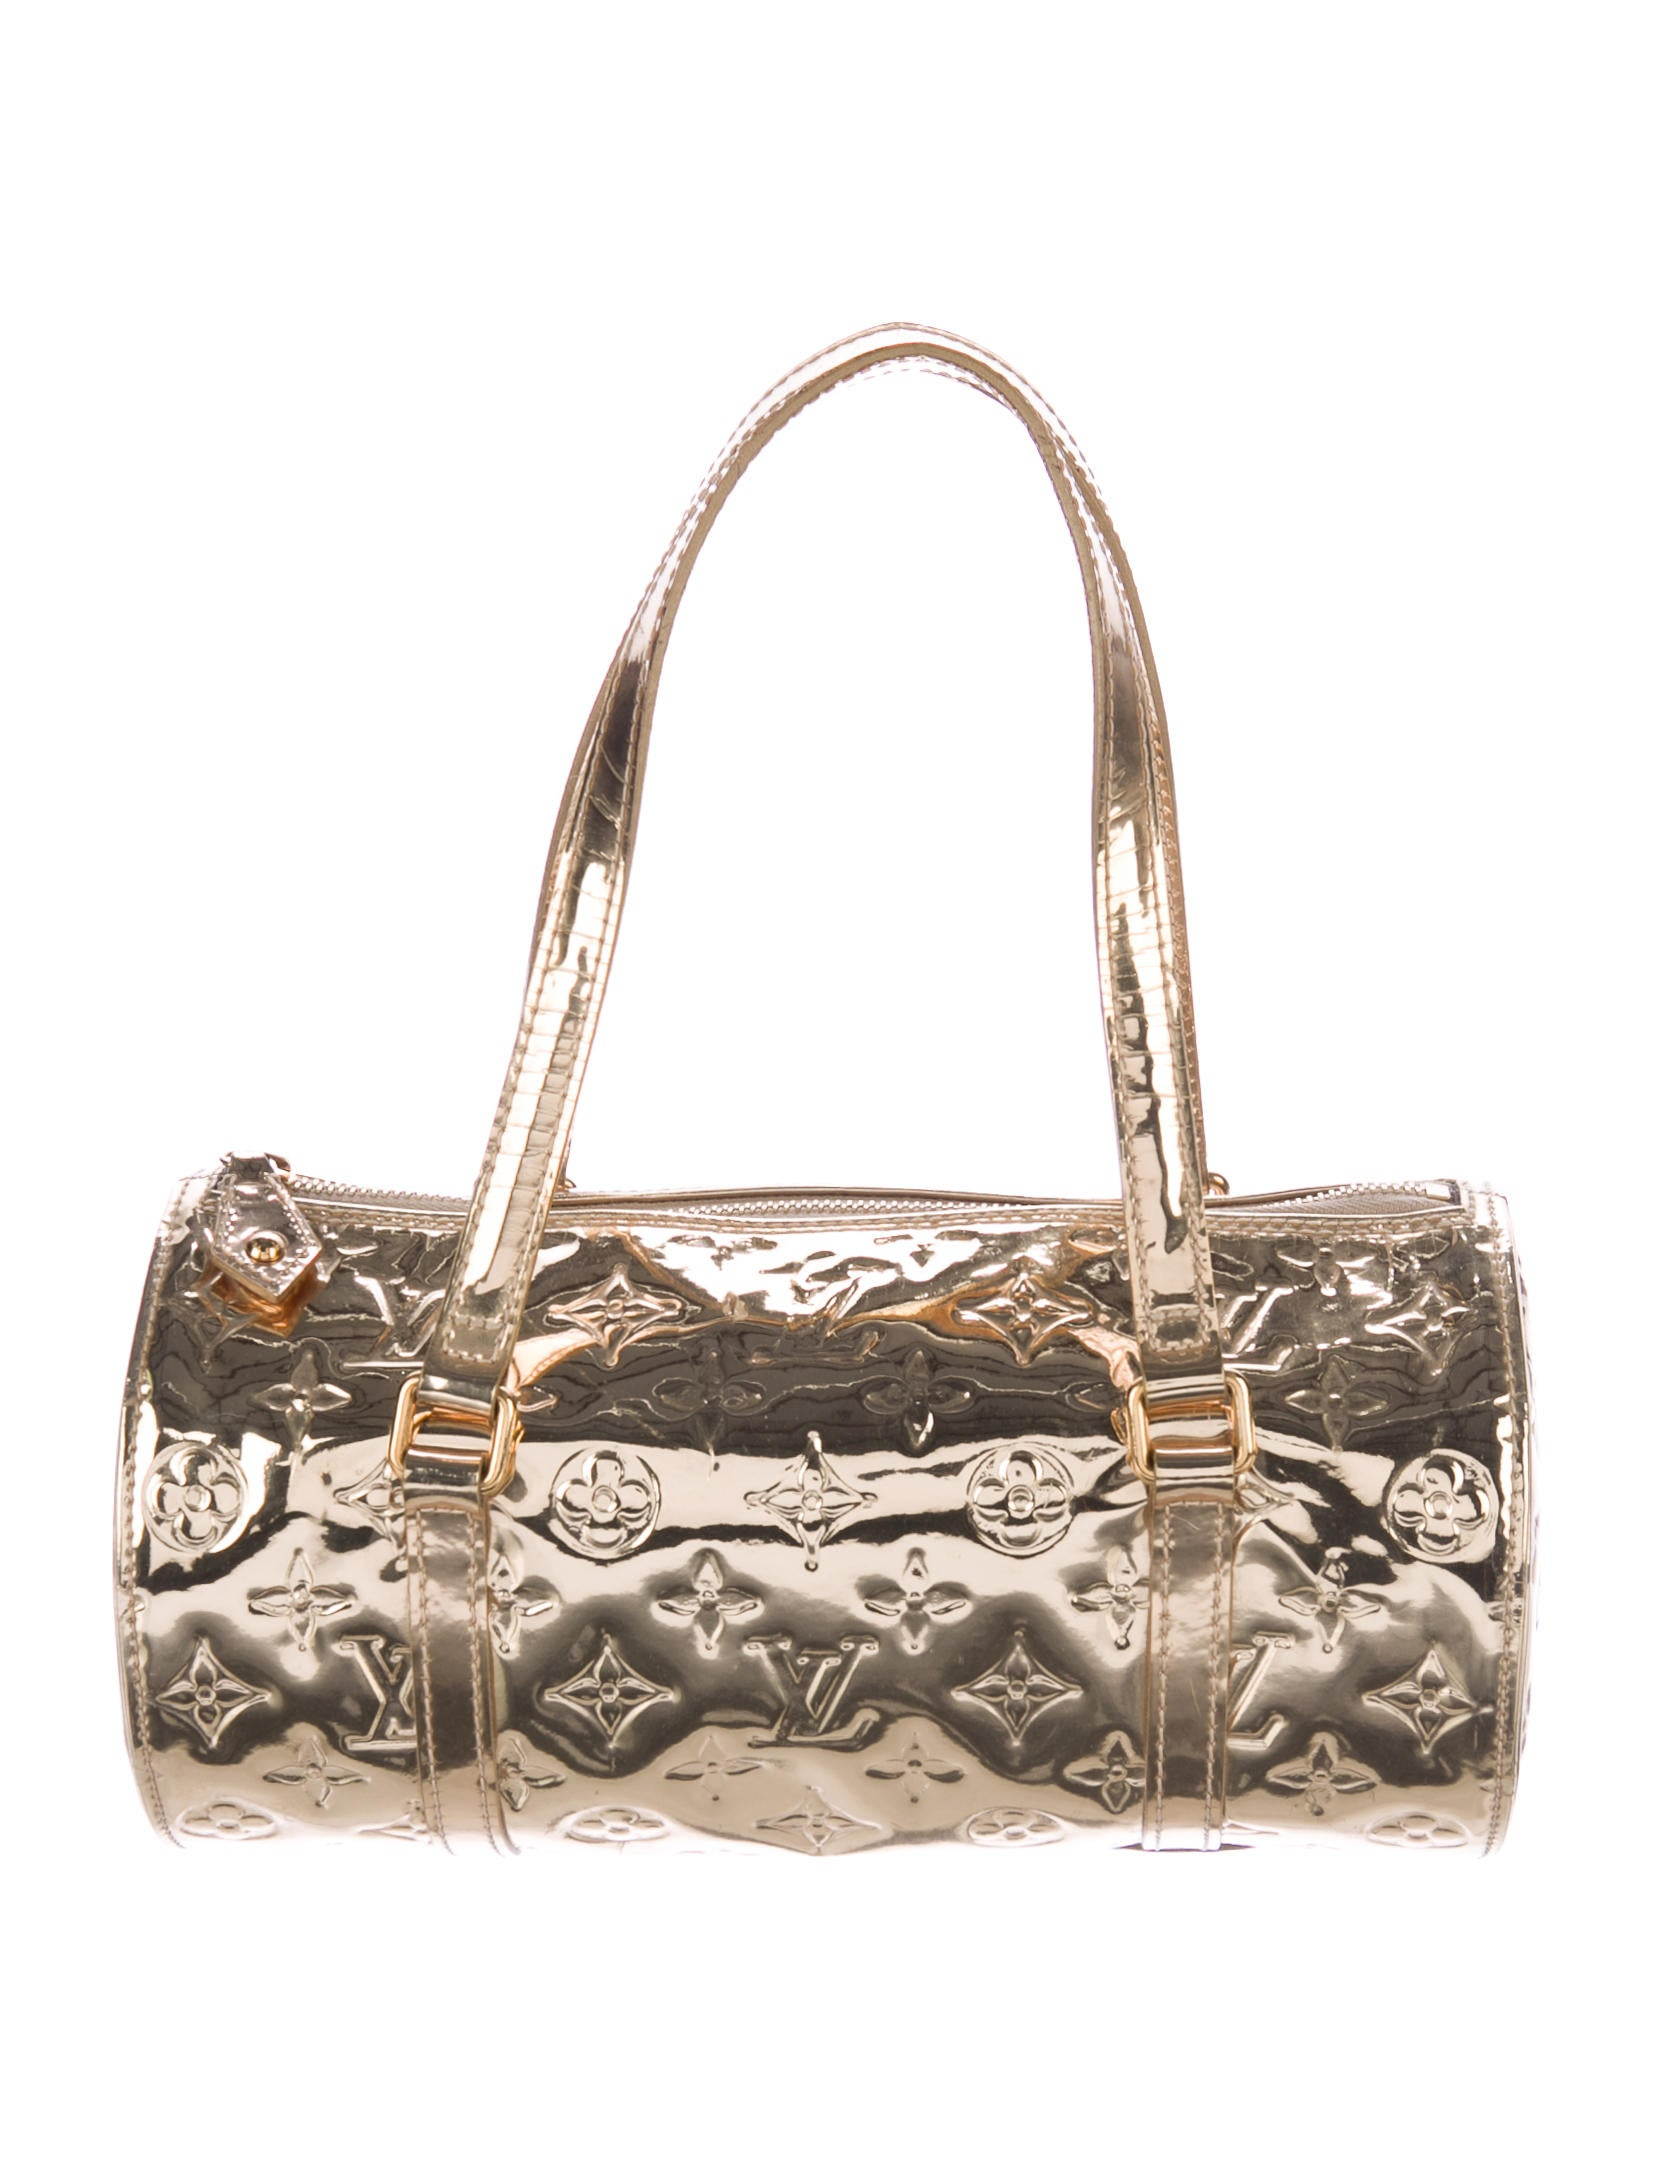 Louis vuitton miroir papillon bag handbags lou134091 for Louis vuitton miroir